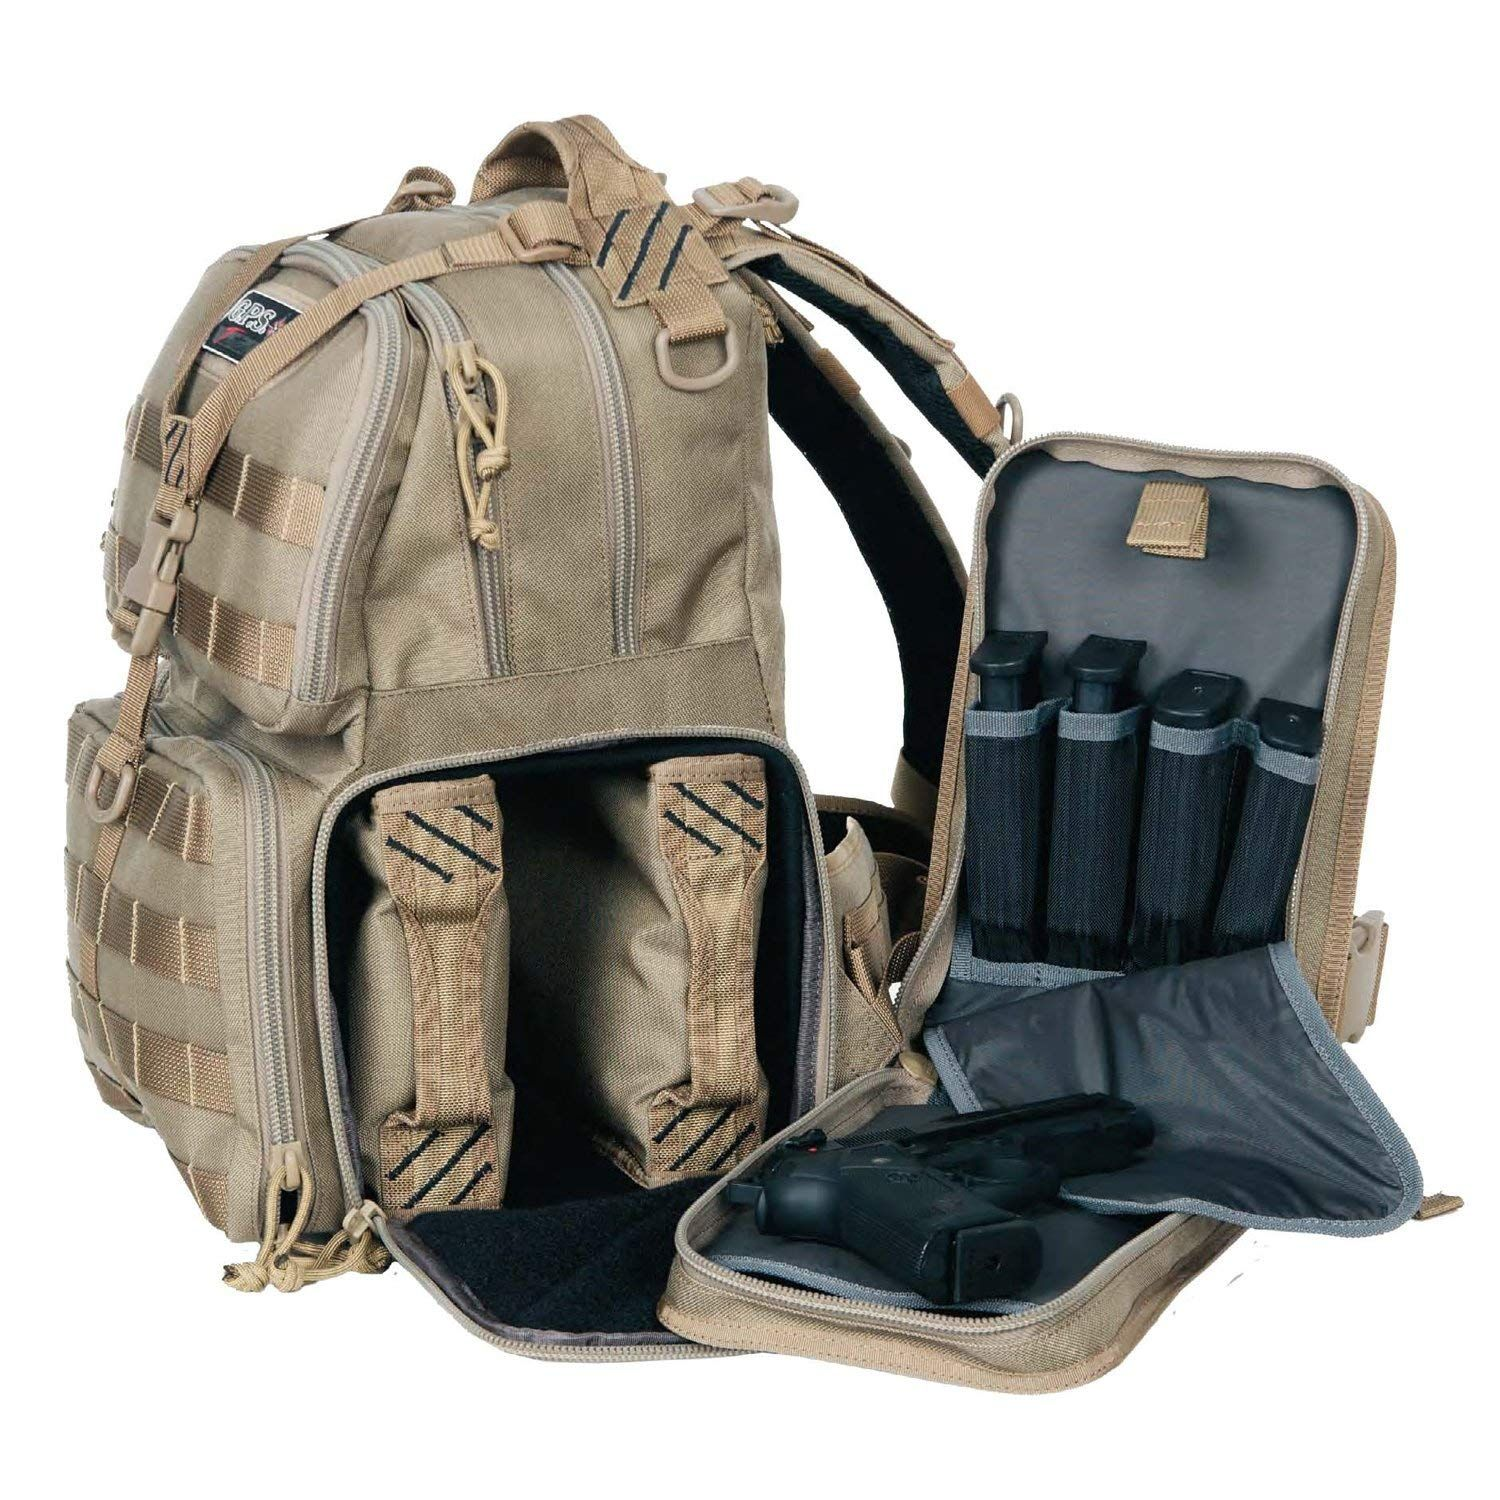 Amazon Com G P S T1612bpt Tactical Range Backpack Tan Sports Outdoors Military Tactical Backpacks Tactical Backpack L Tactical Backpack Backpacks Bags